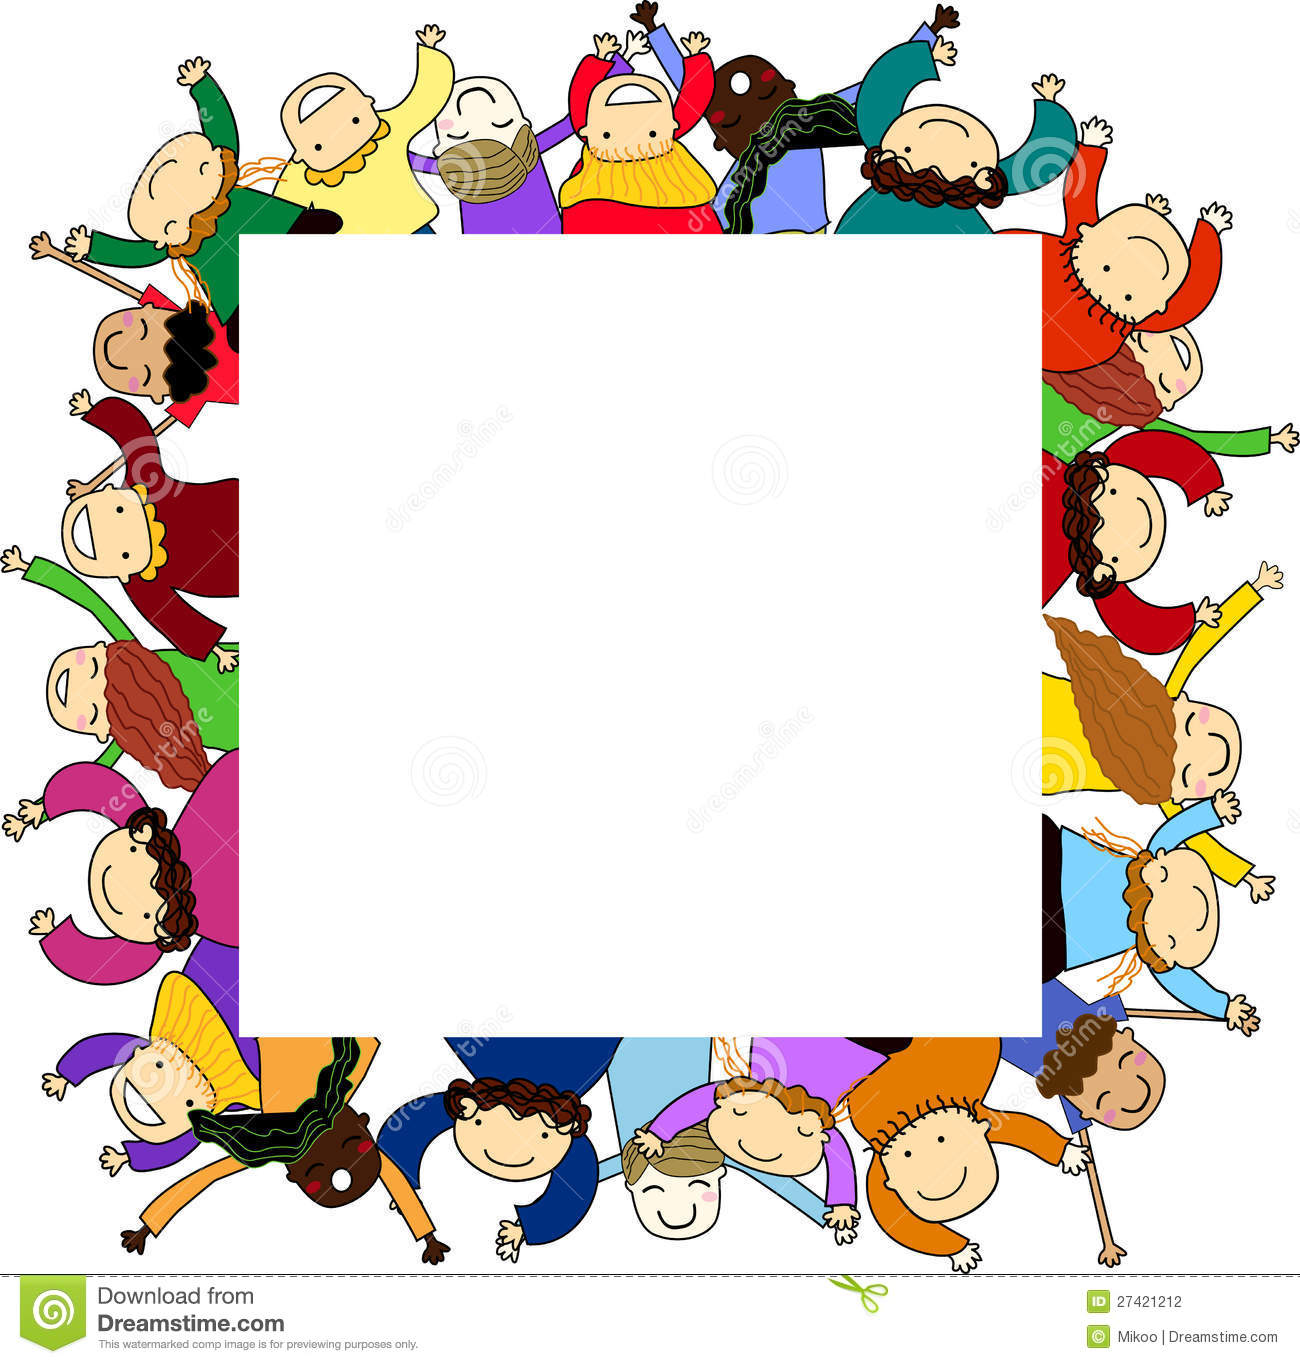 Preschool Borders And Frames | Free download on ClipArtMag